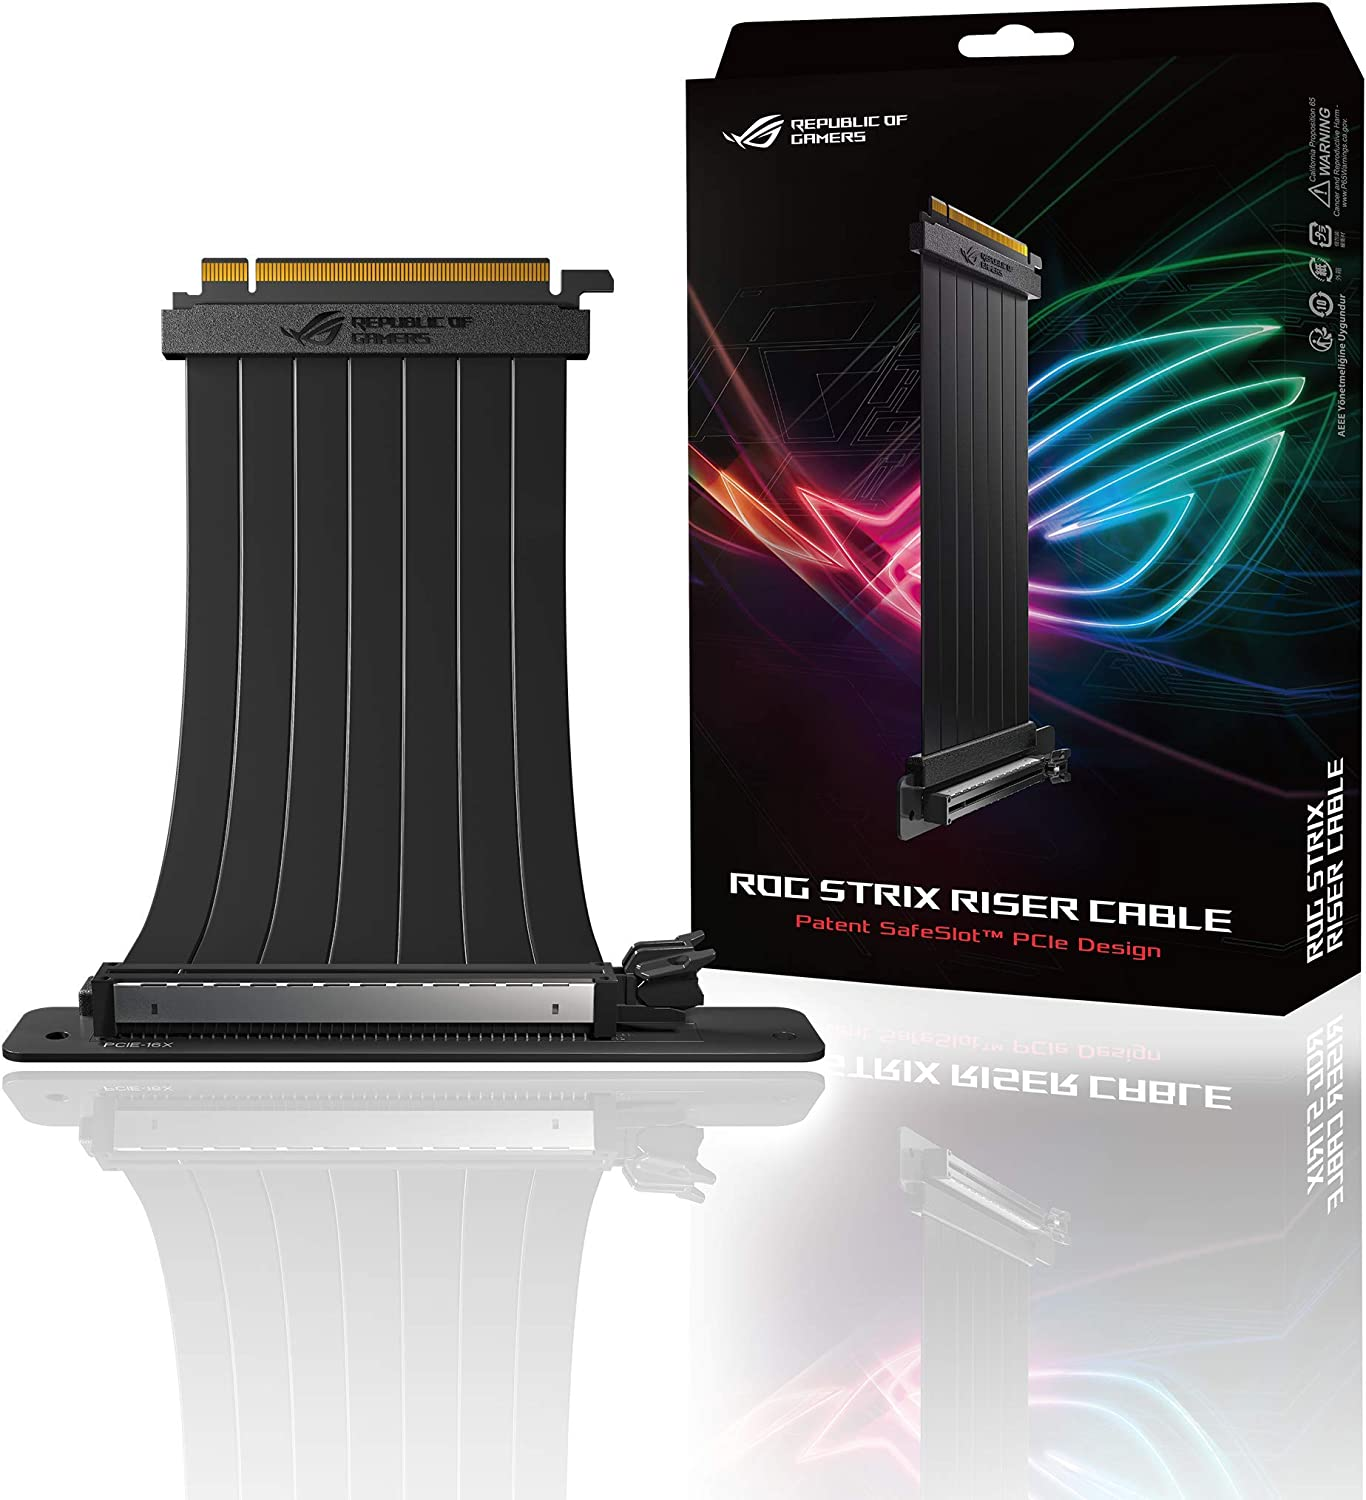 ASUS ROG Strix Riser Cable PCI-E 3.0 x16 High Speed Flexible Extender Card Extension Port, 90 Degree Adapter (240 mm)